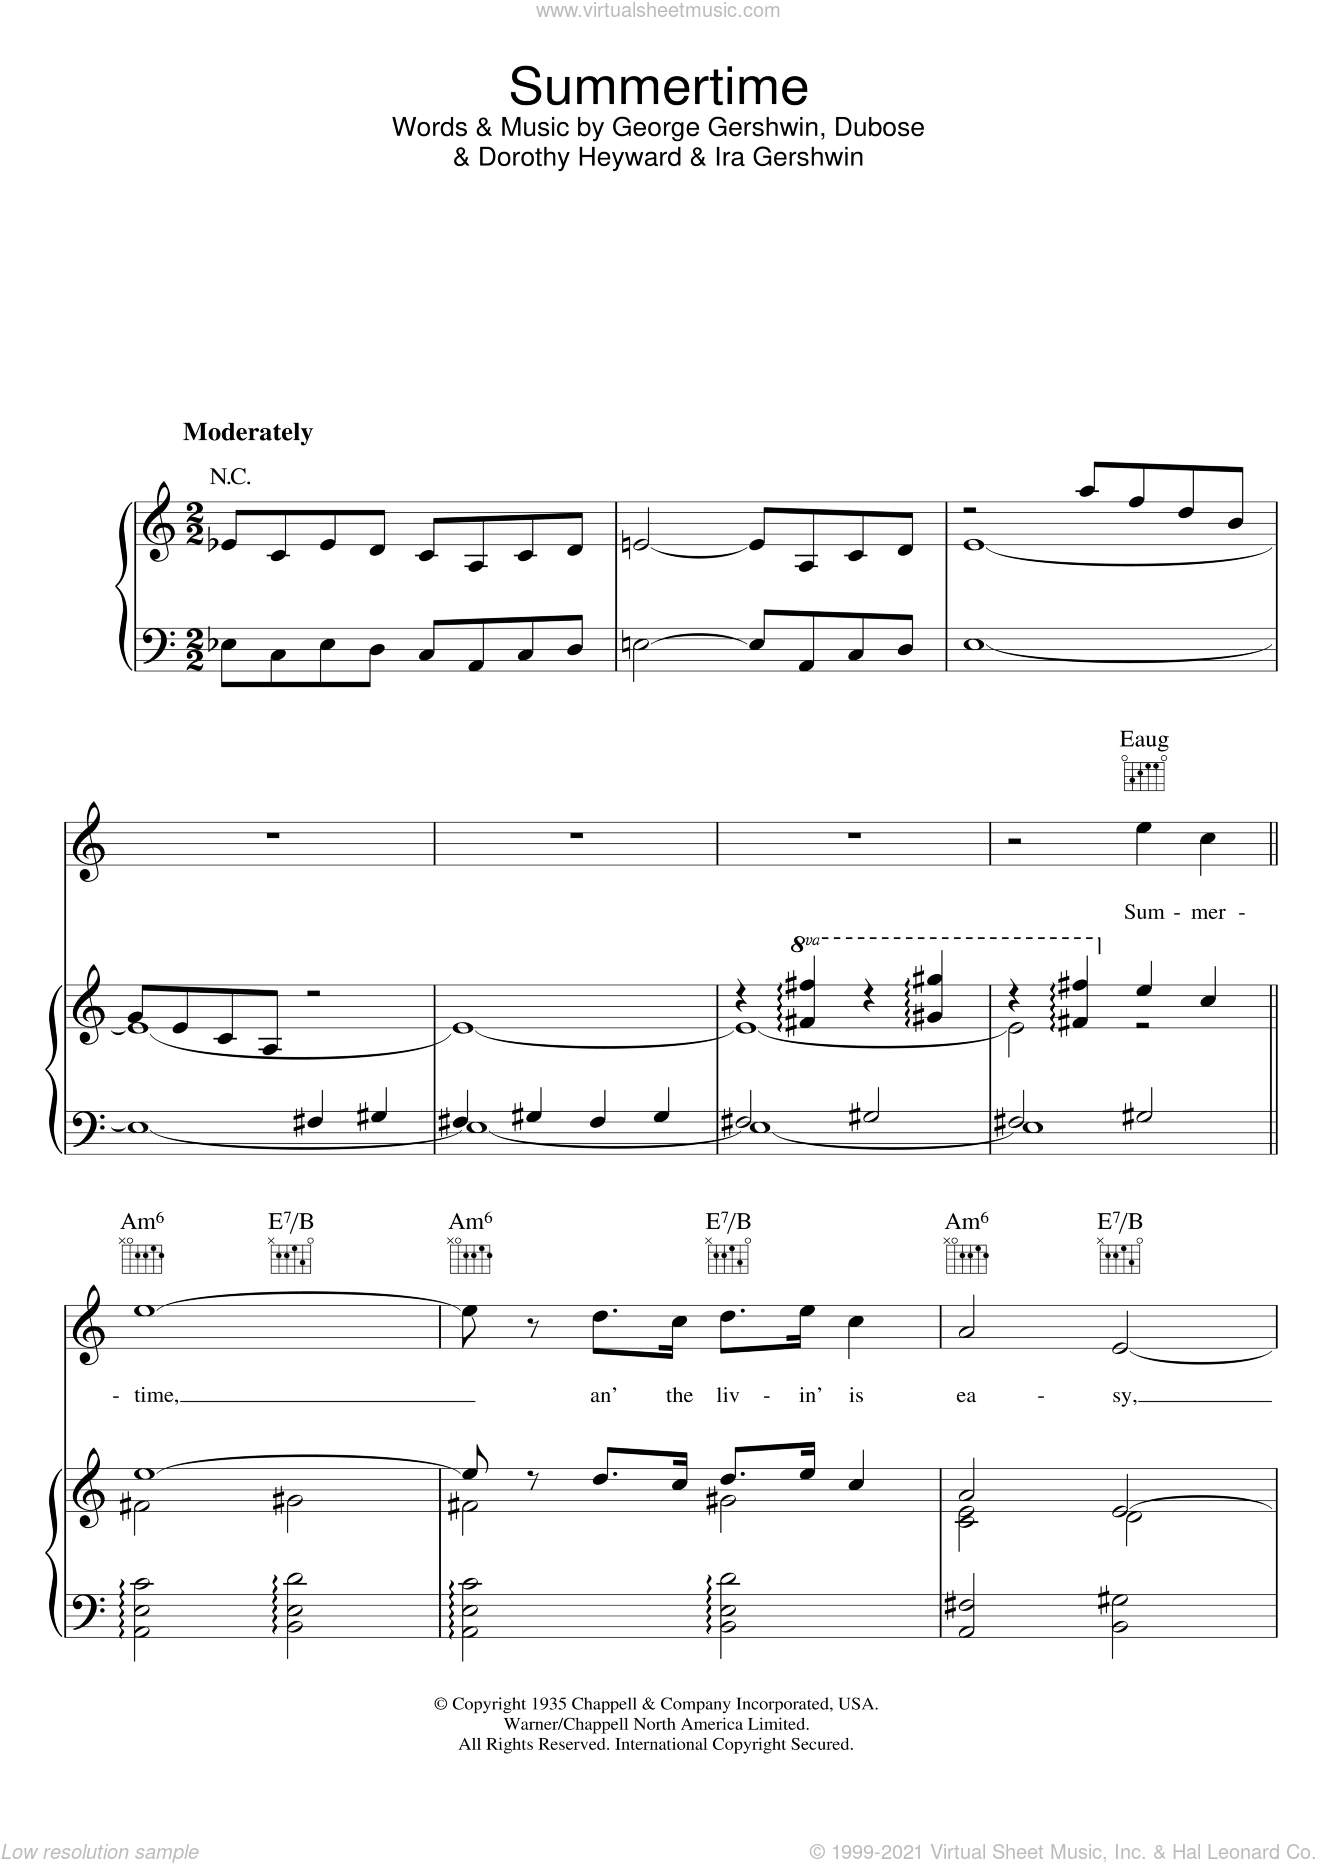 Summertime (from Porgy And Bess) sheet music for voice, piano or guitar by George Gershwin, Dorothy Heyward, DuBose Heyward and Ira Gershwin, intermediate skill level